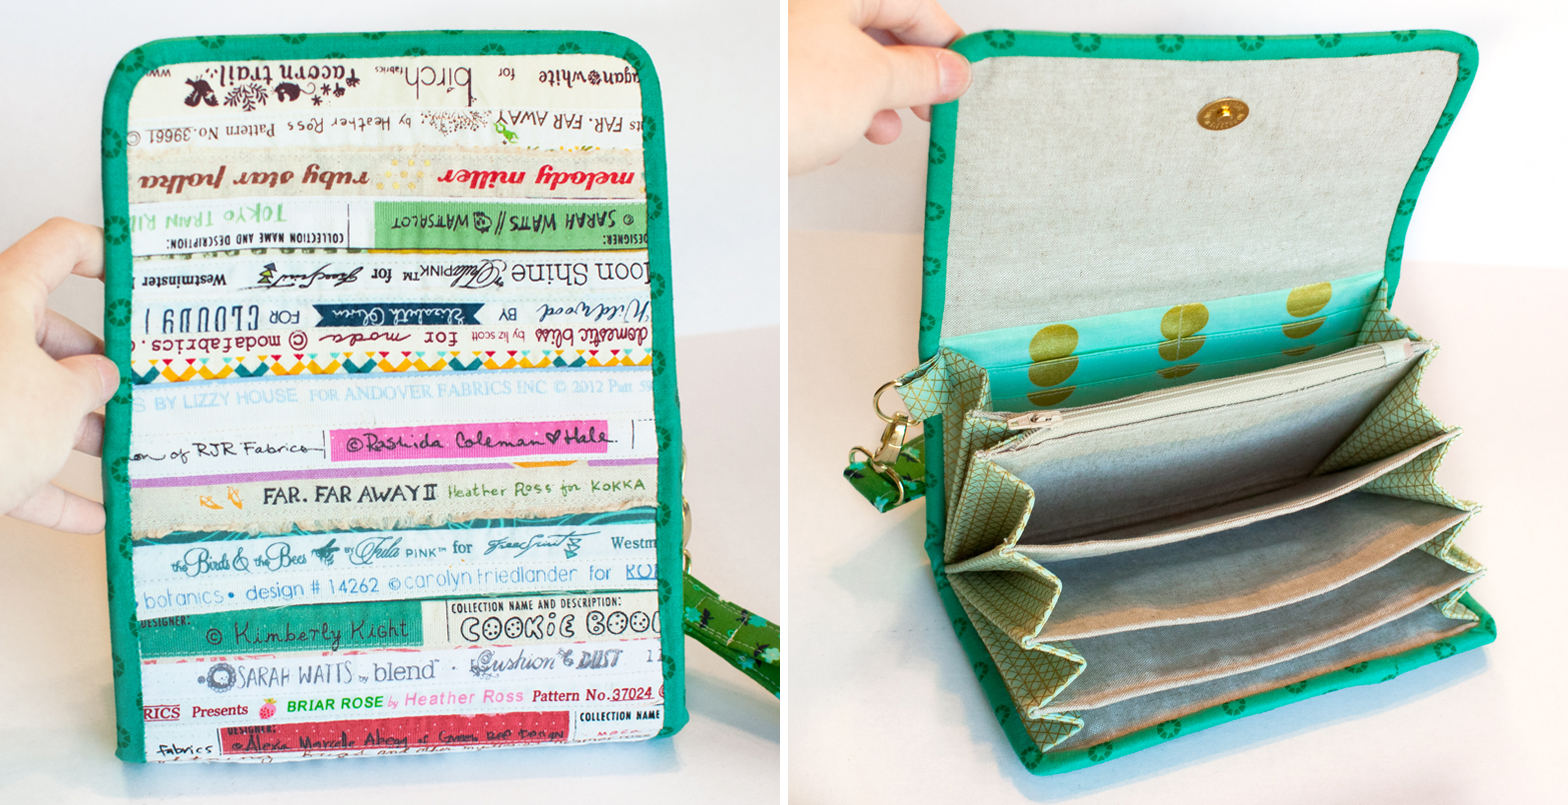 I am luna sol selvedge wallets accordion wallet pattern review thursday january 29 2015 jeuxipadfo Image collections